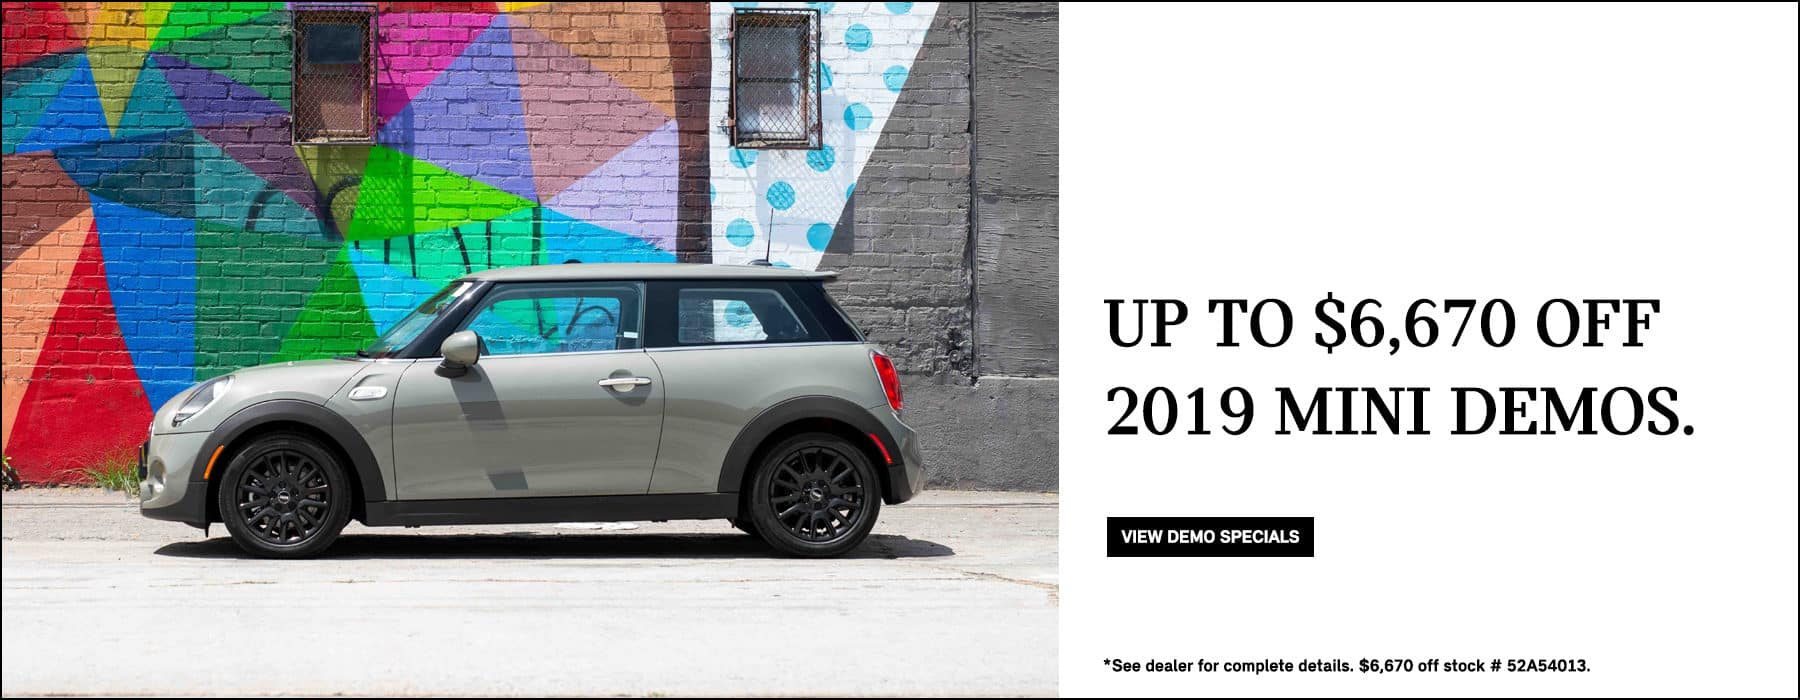 Up to $6,700 off 2019 MINI Demos. View demo specials.